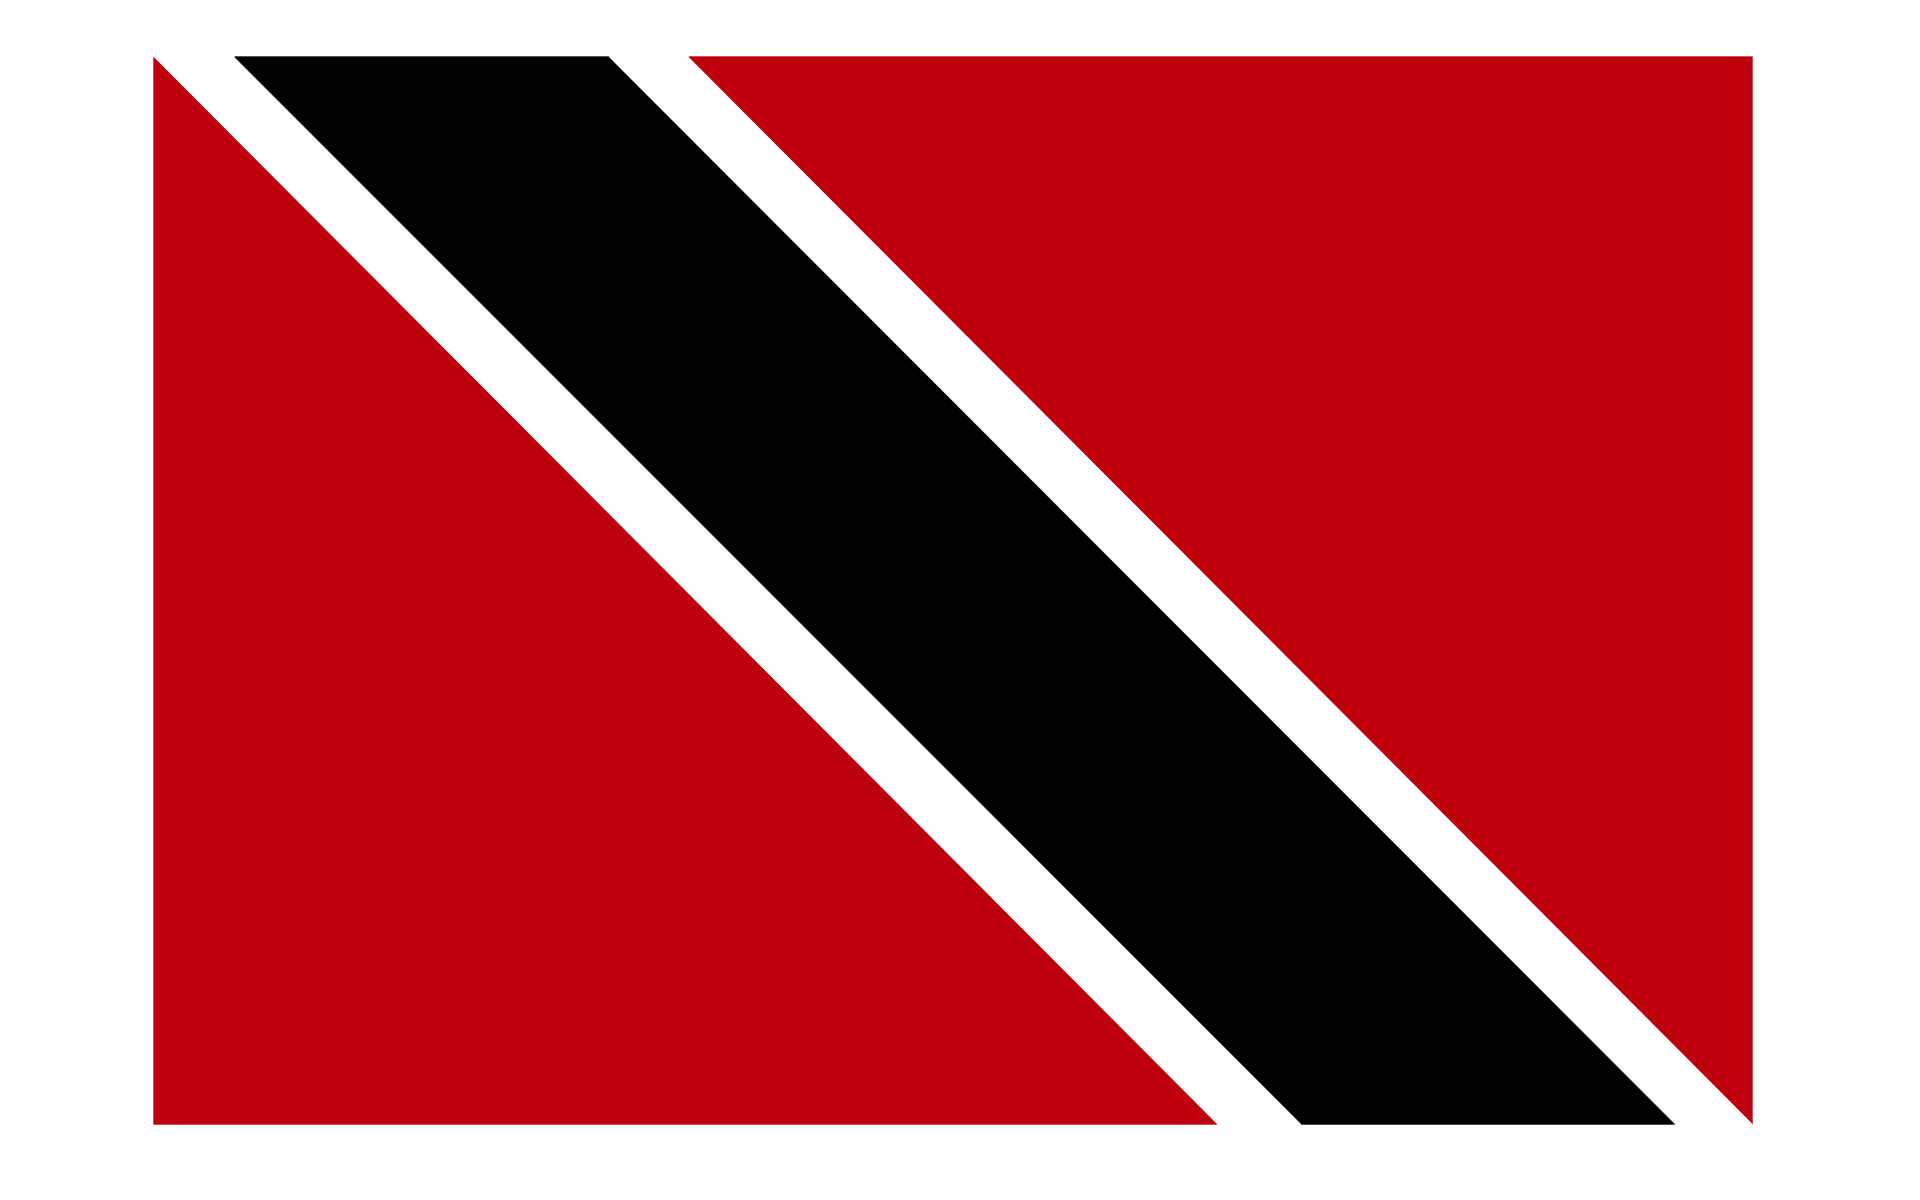 Trinidad Tobago Flags Of The World Pugs Funny Countries And Flags